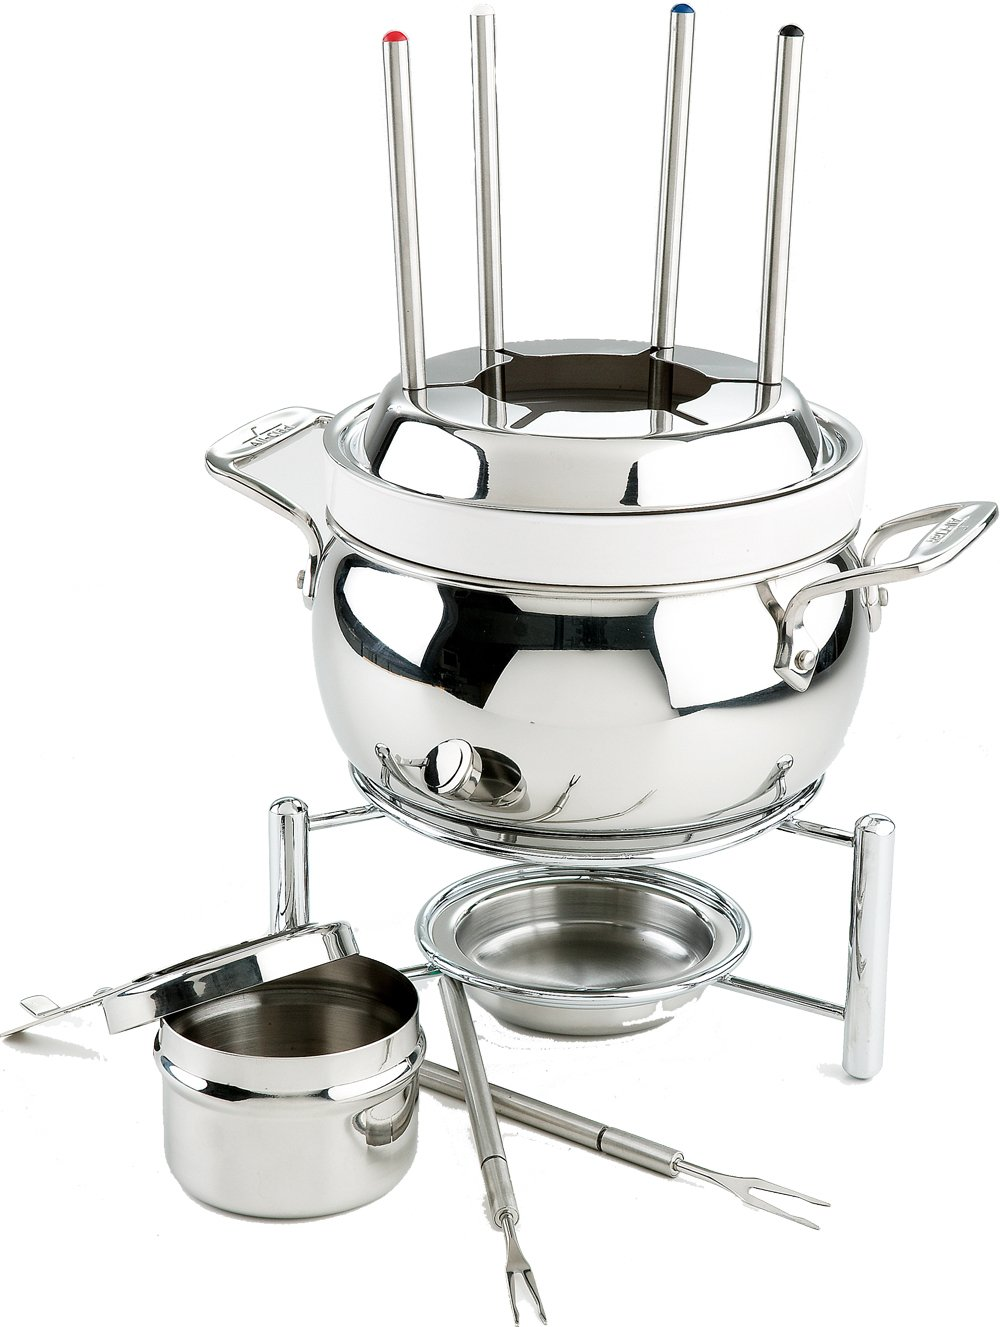 All-Clad 59936 Stainless Steel Fondue Pot with Ceramic Insert Cookware, Silver by All-Clad